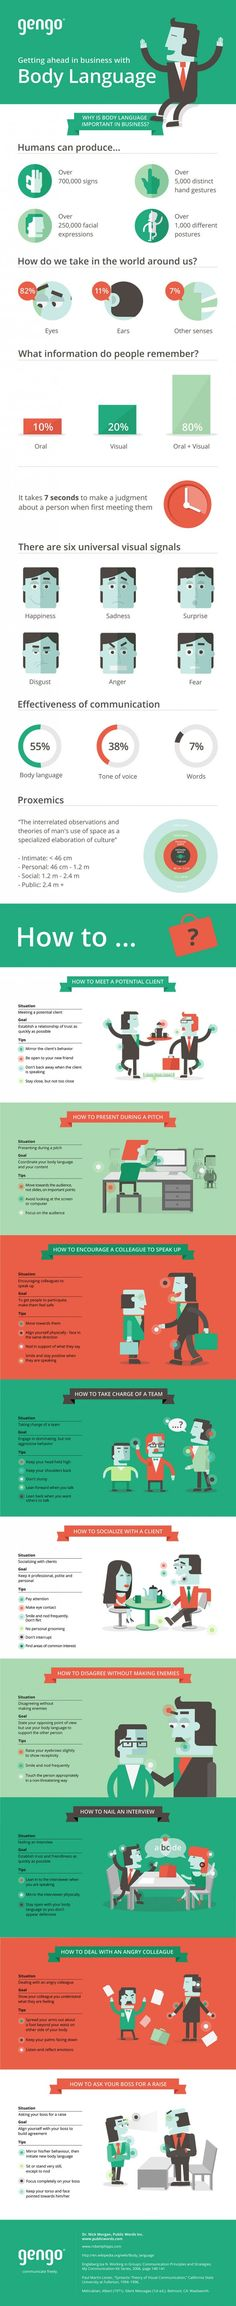 Getting Ahead in Business with Body Language #Infographic